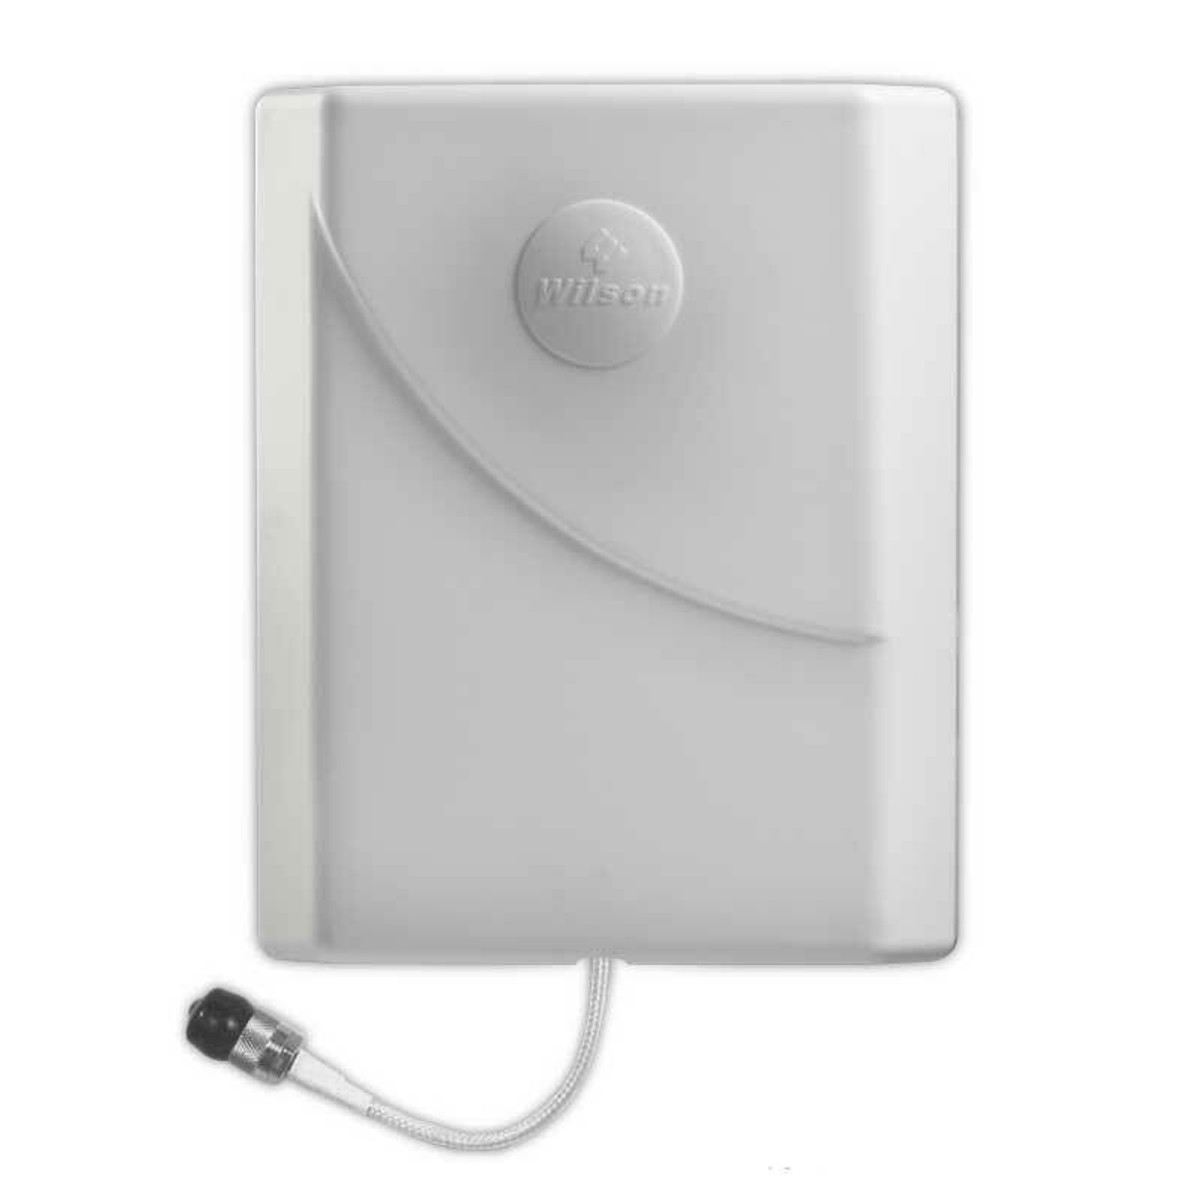 weBoost (Wilson) 311135 Panel Antenna w/ Wall Mount, wide-band 50 Ohm